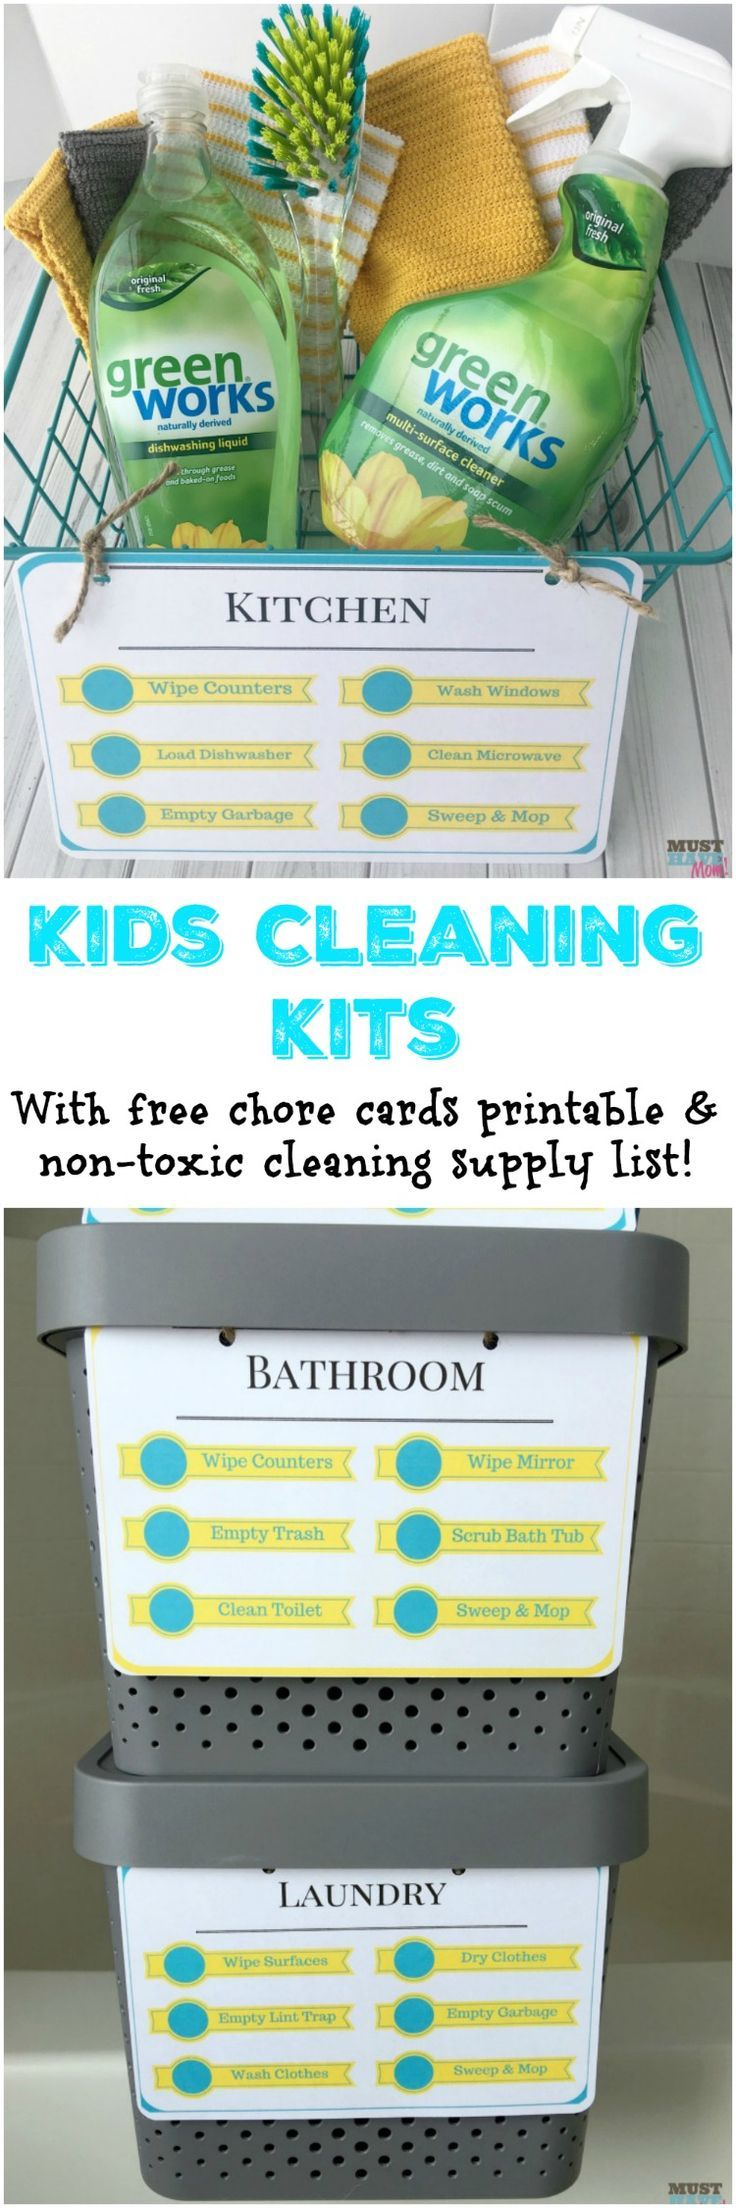 DIY Kids cleaning kits with free printable kids cleaning checklist and natural cleaning products list. Put together these kids chore kits so they can effectively and safely clean each room!